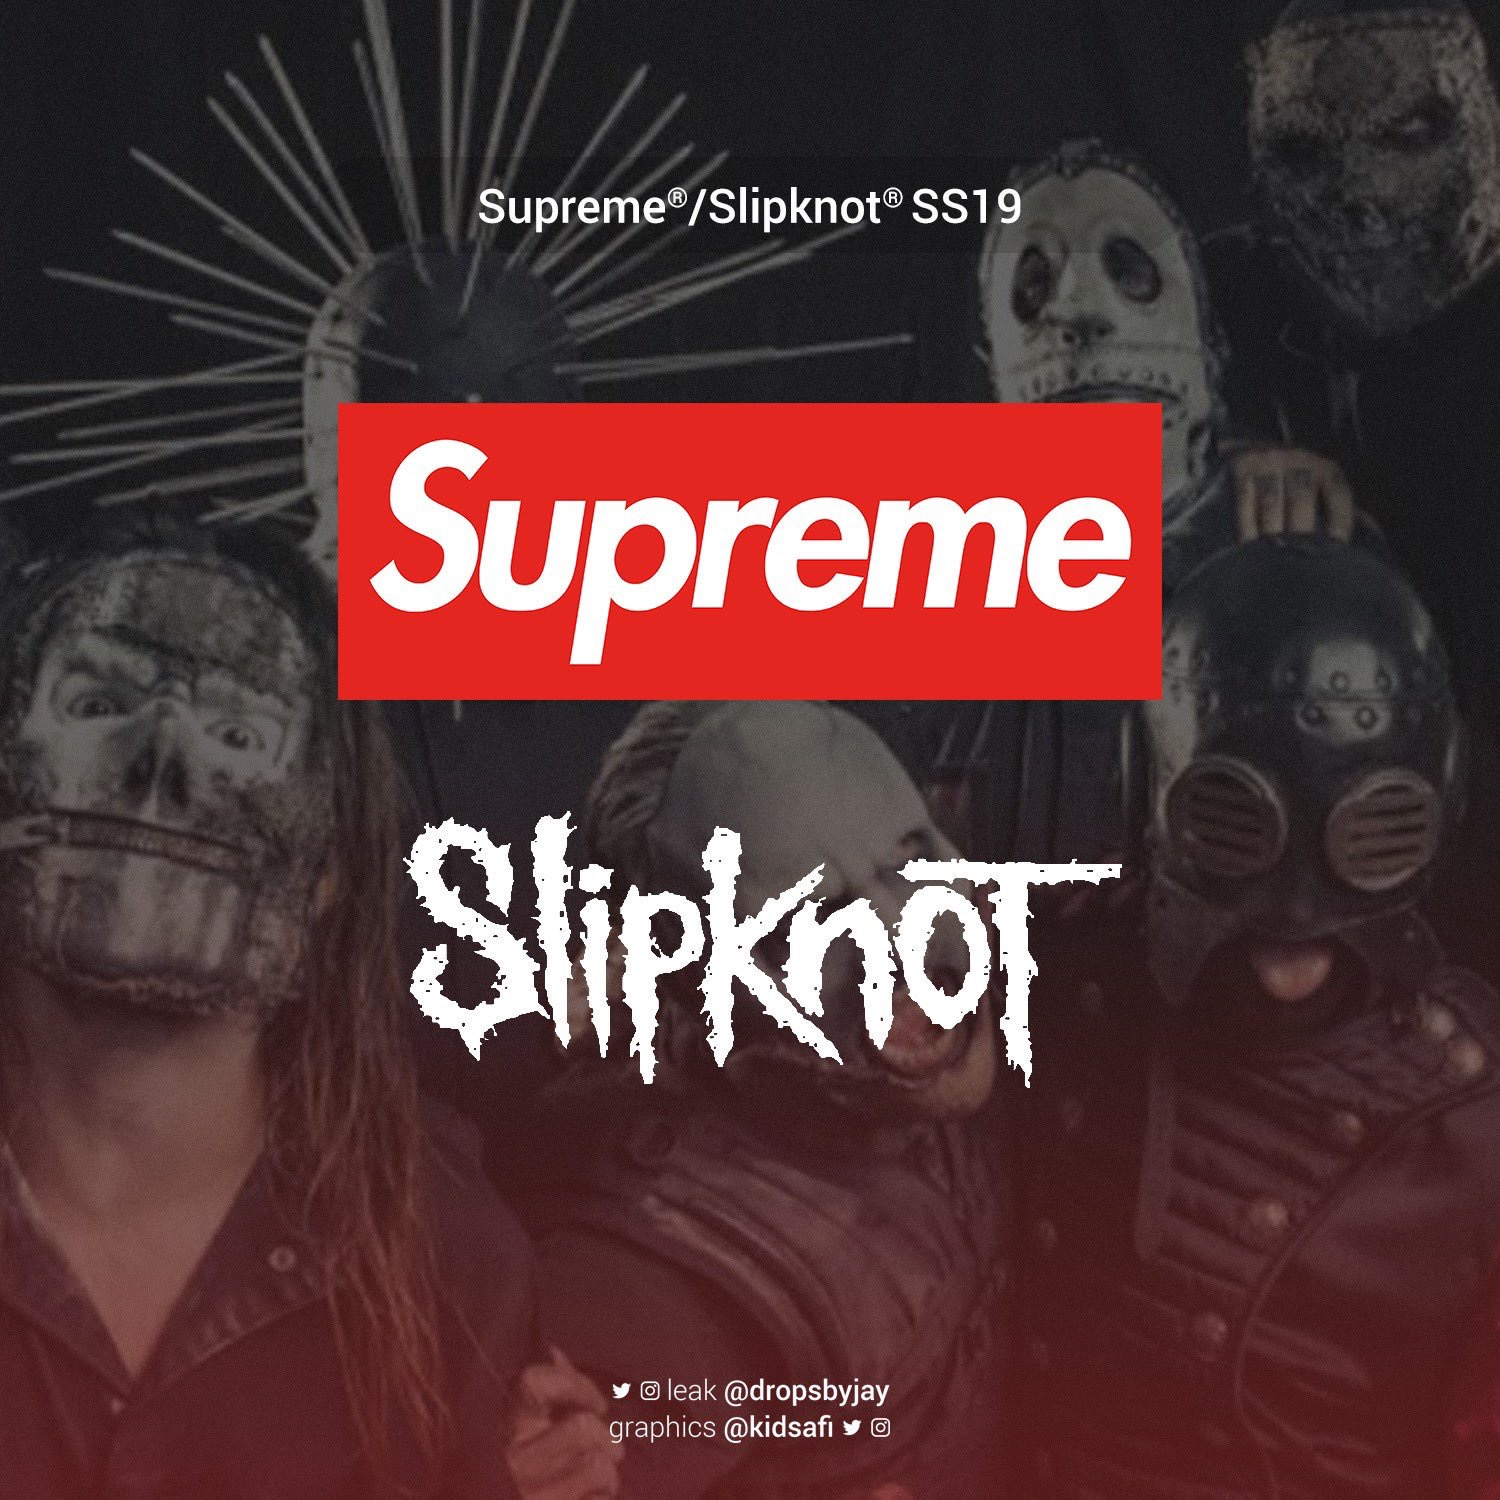 Supreme X Slipknot Coming For Spring Summer 2019 Don T Take The L